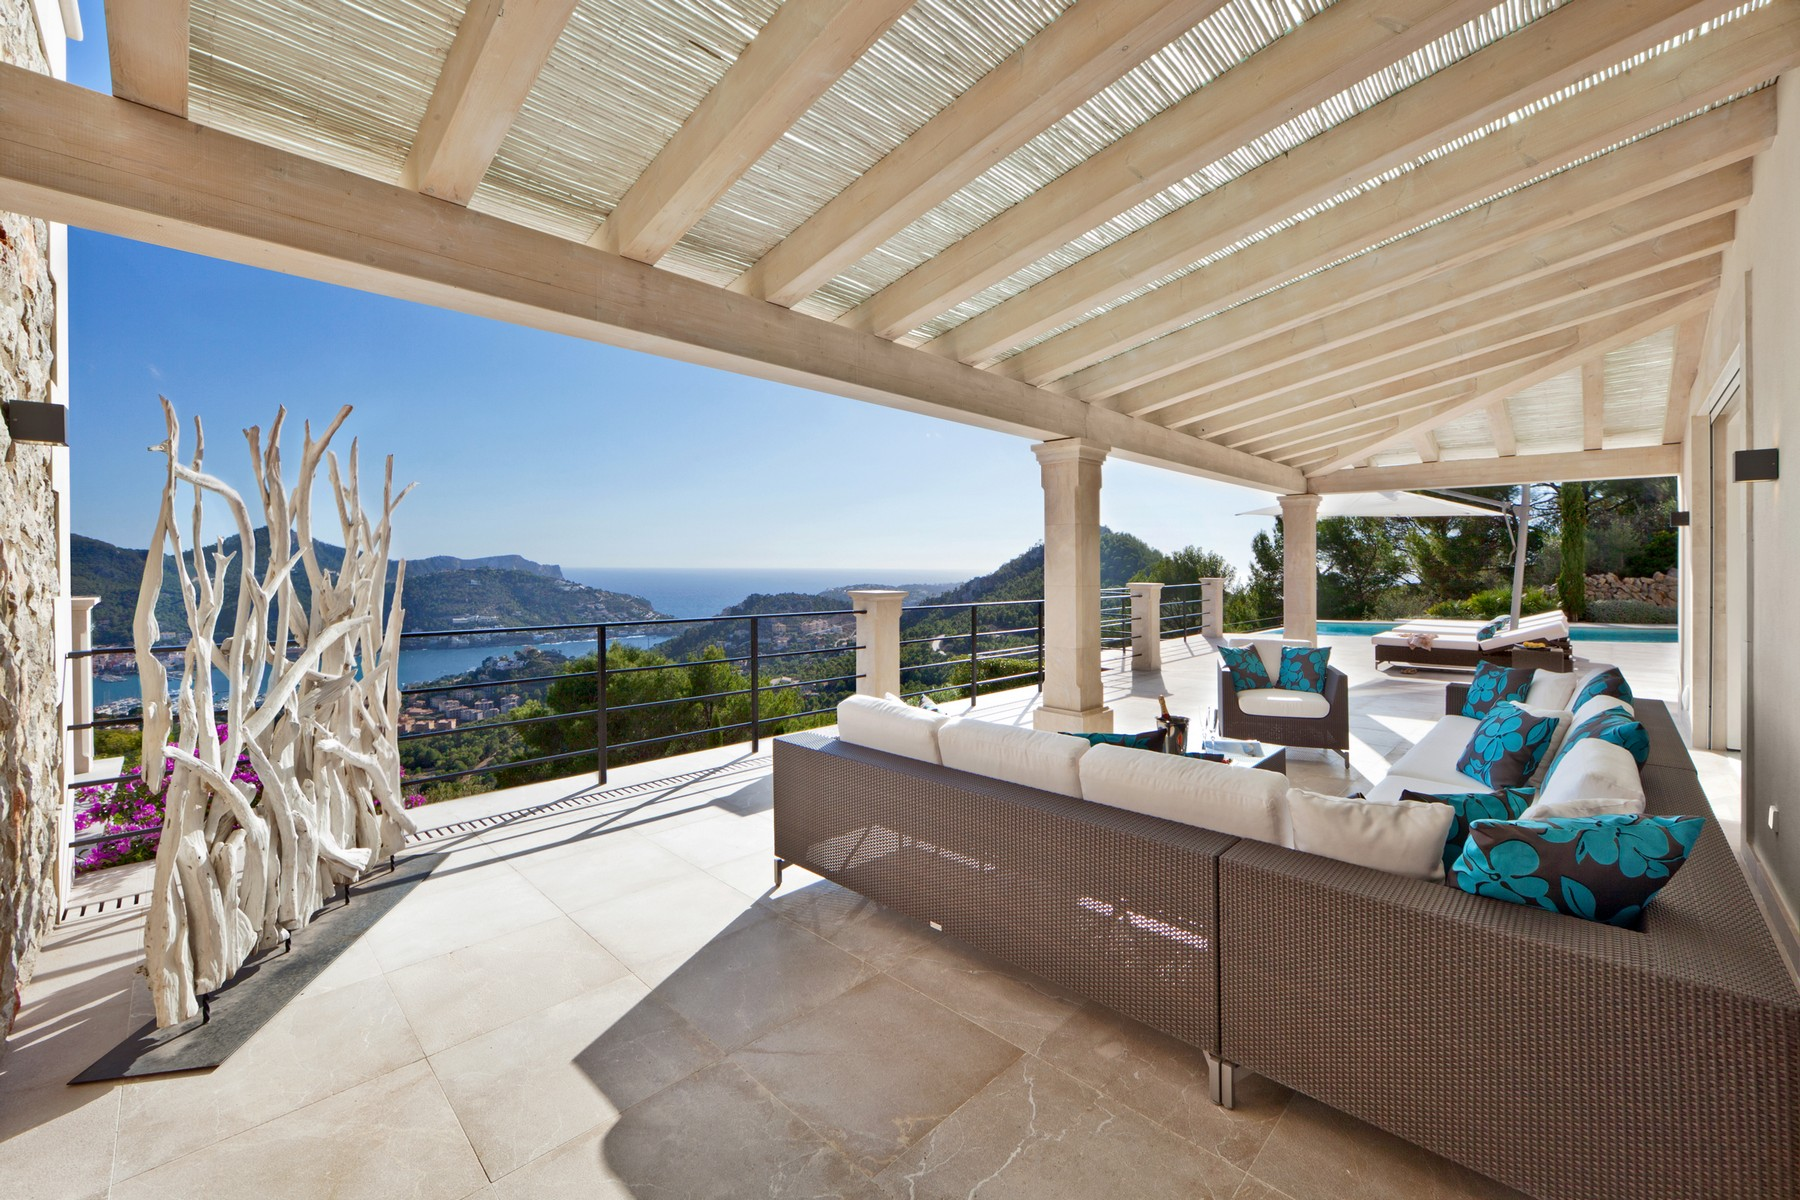 Tek Ailelik Ev için Satış at Luxury newly built Villa in Monport, Port Andratx Port Andratx, Mallorca 07157 Ispanya